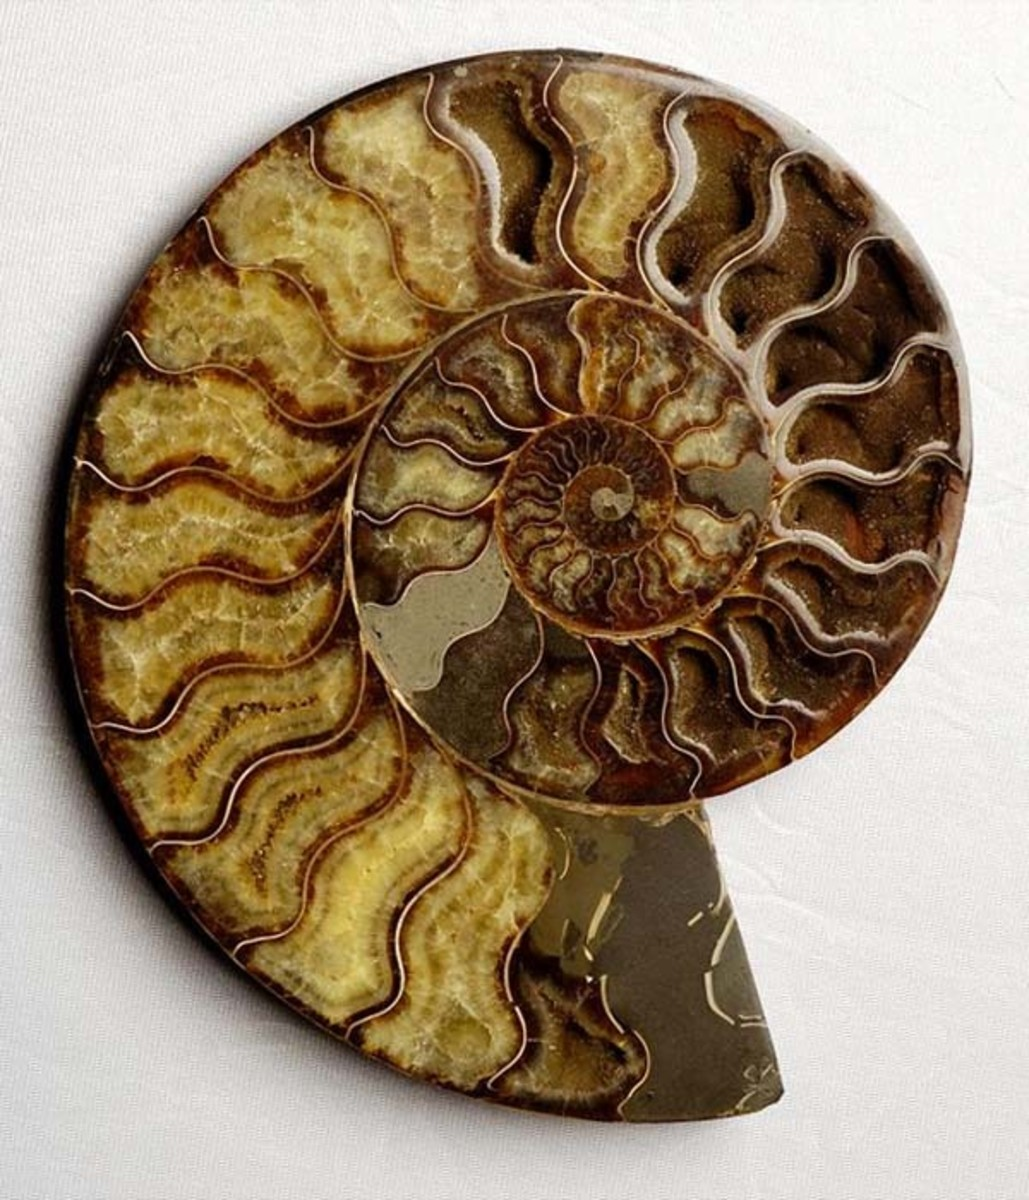 The chambers inside an Ammonite fossil shell.